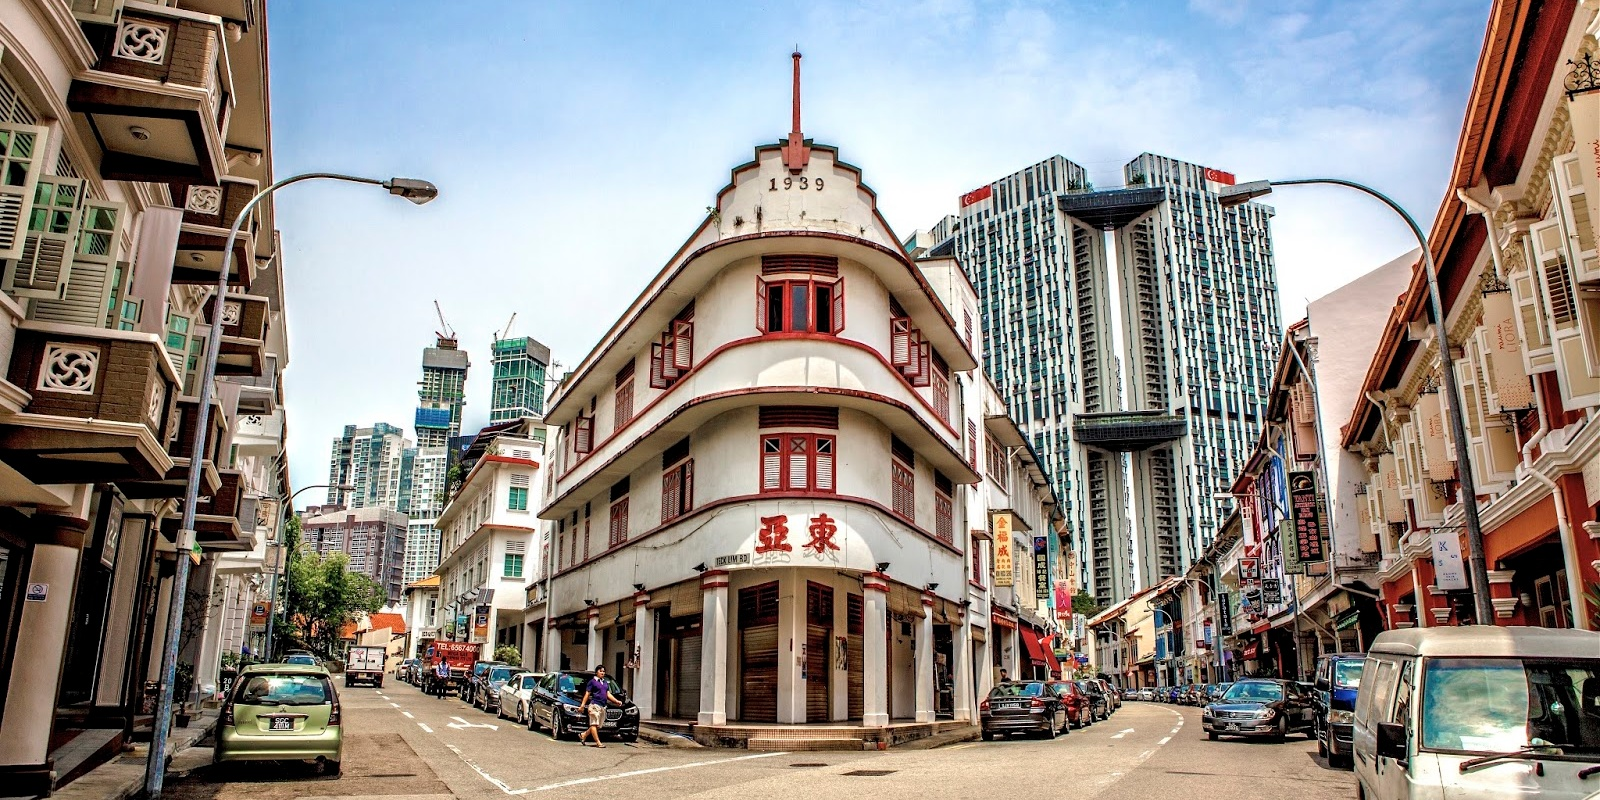 House of Noise to present multi-stage showcase with Urban Ventures, a street party at Keong Saik